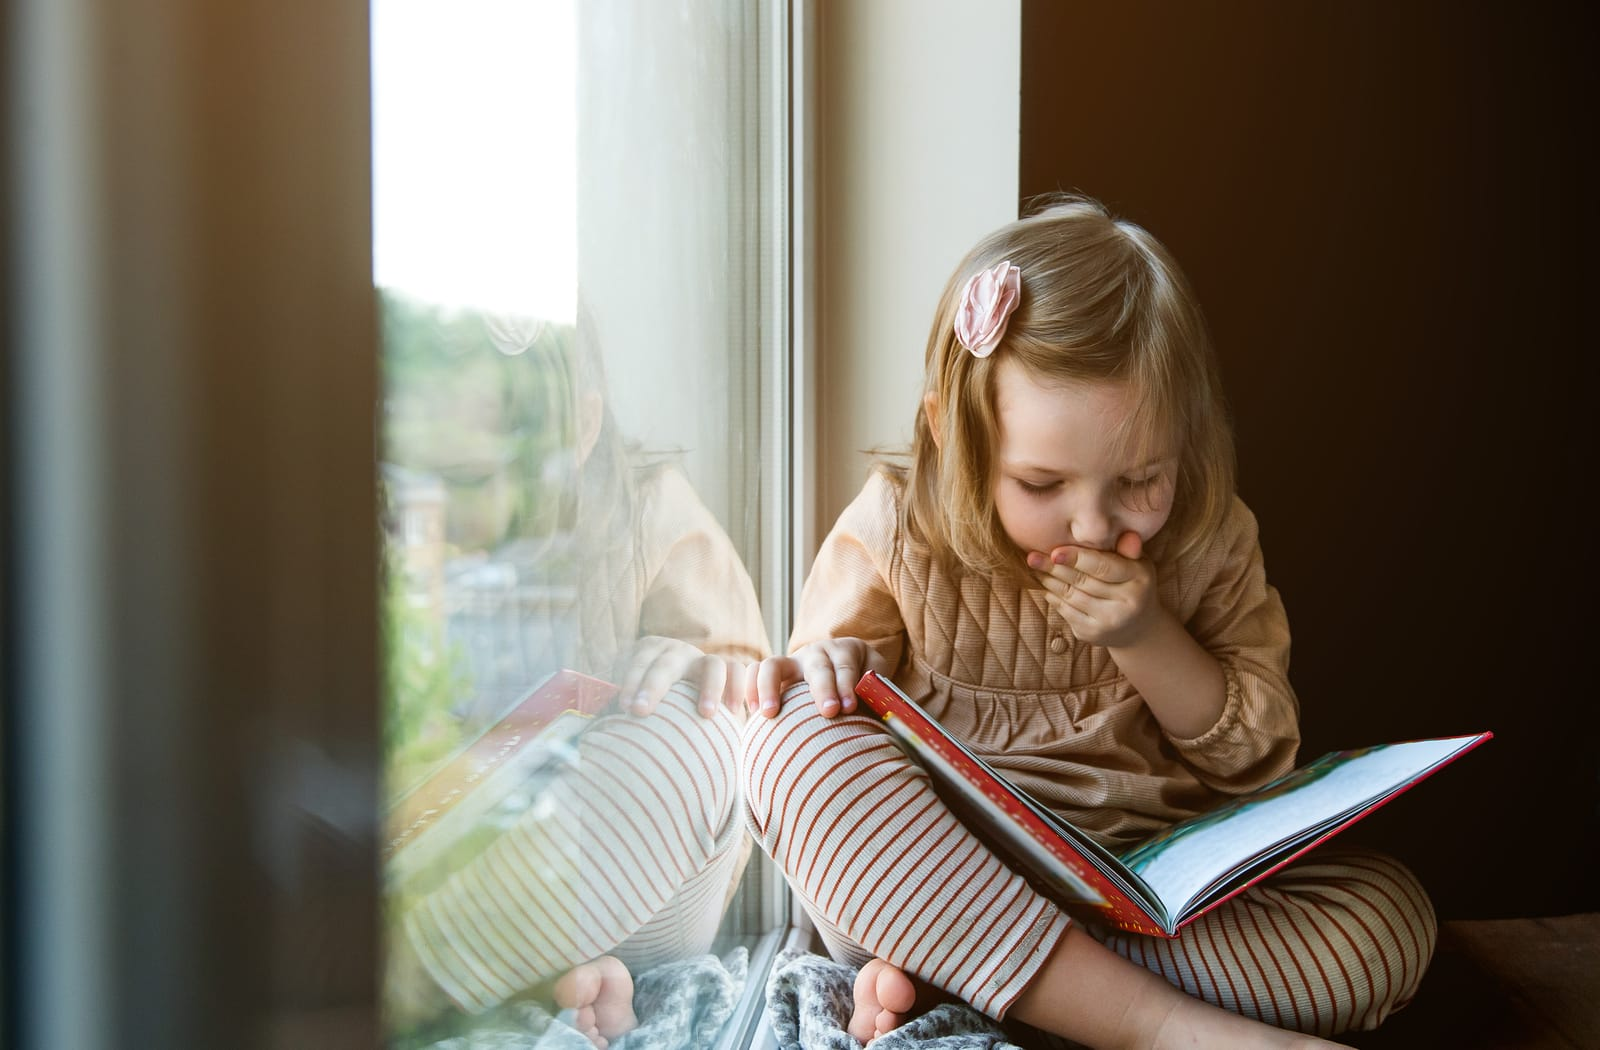 A young child reads a book in a well-lit room during the daytime to avoid affecting her sleep at night